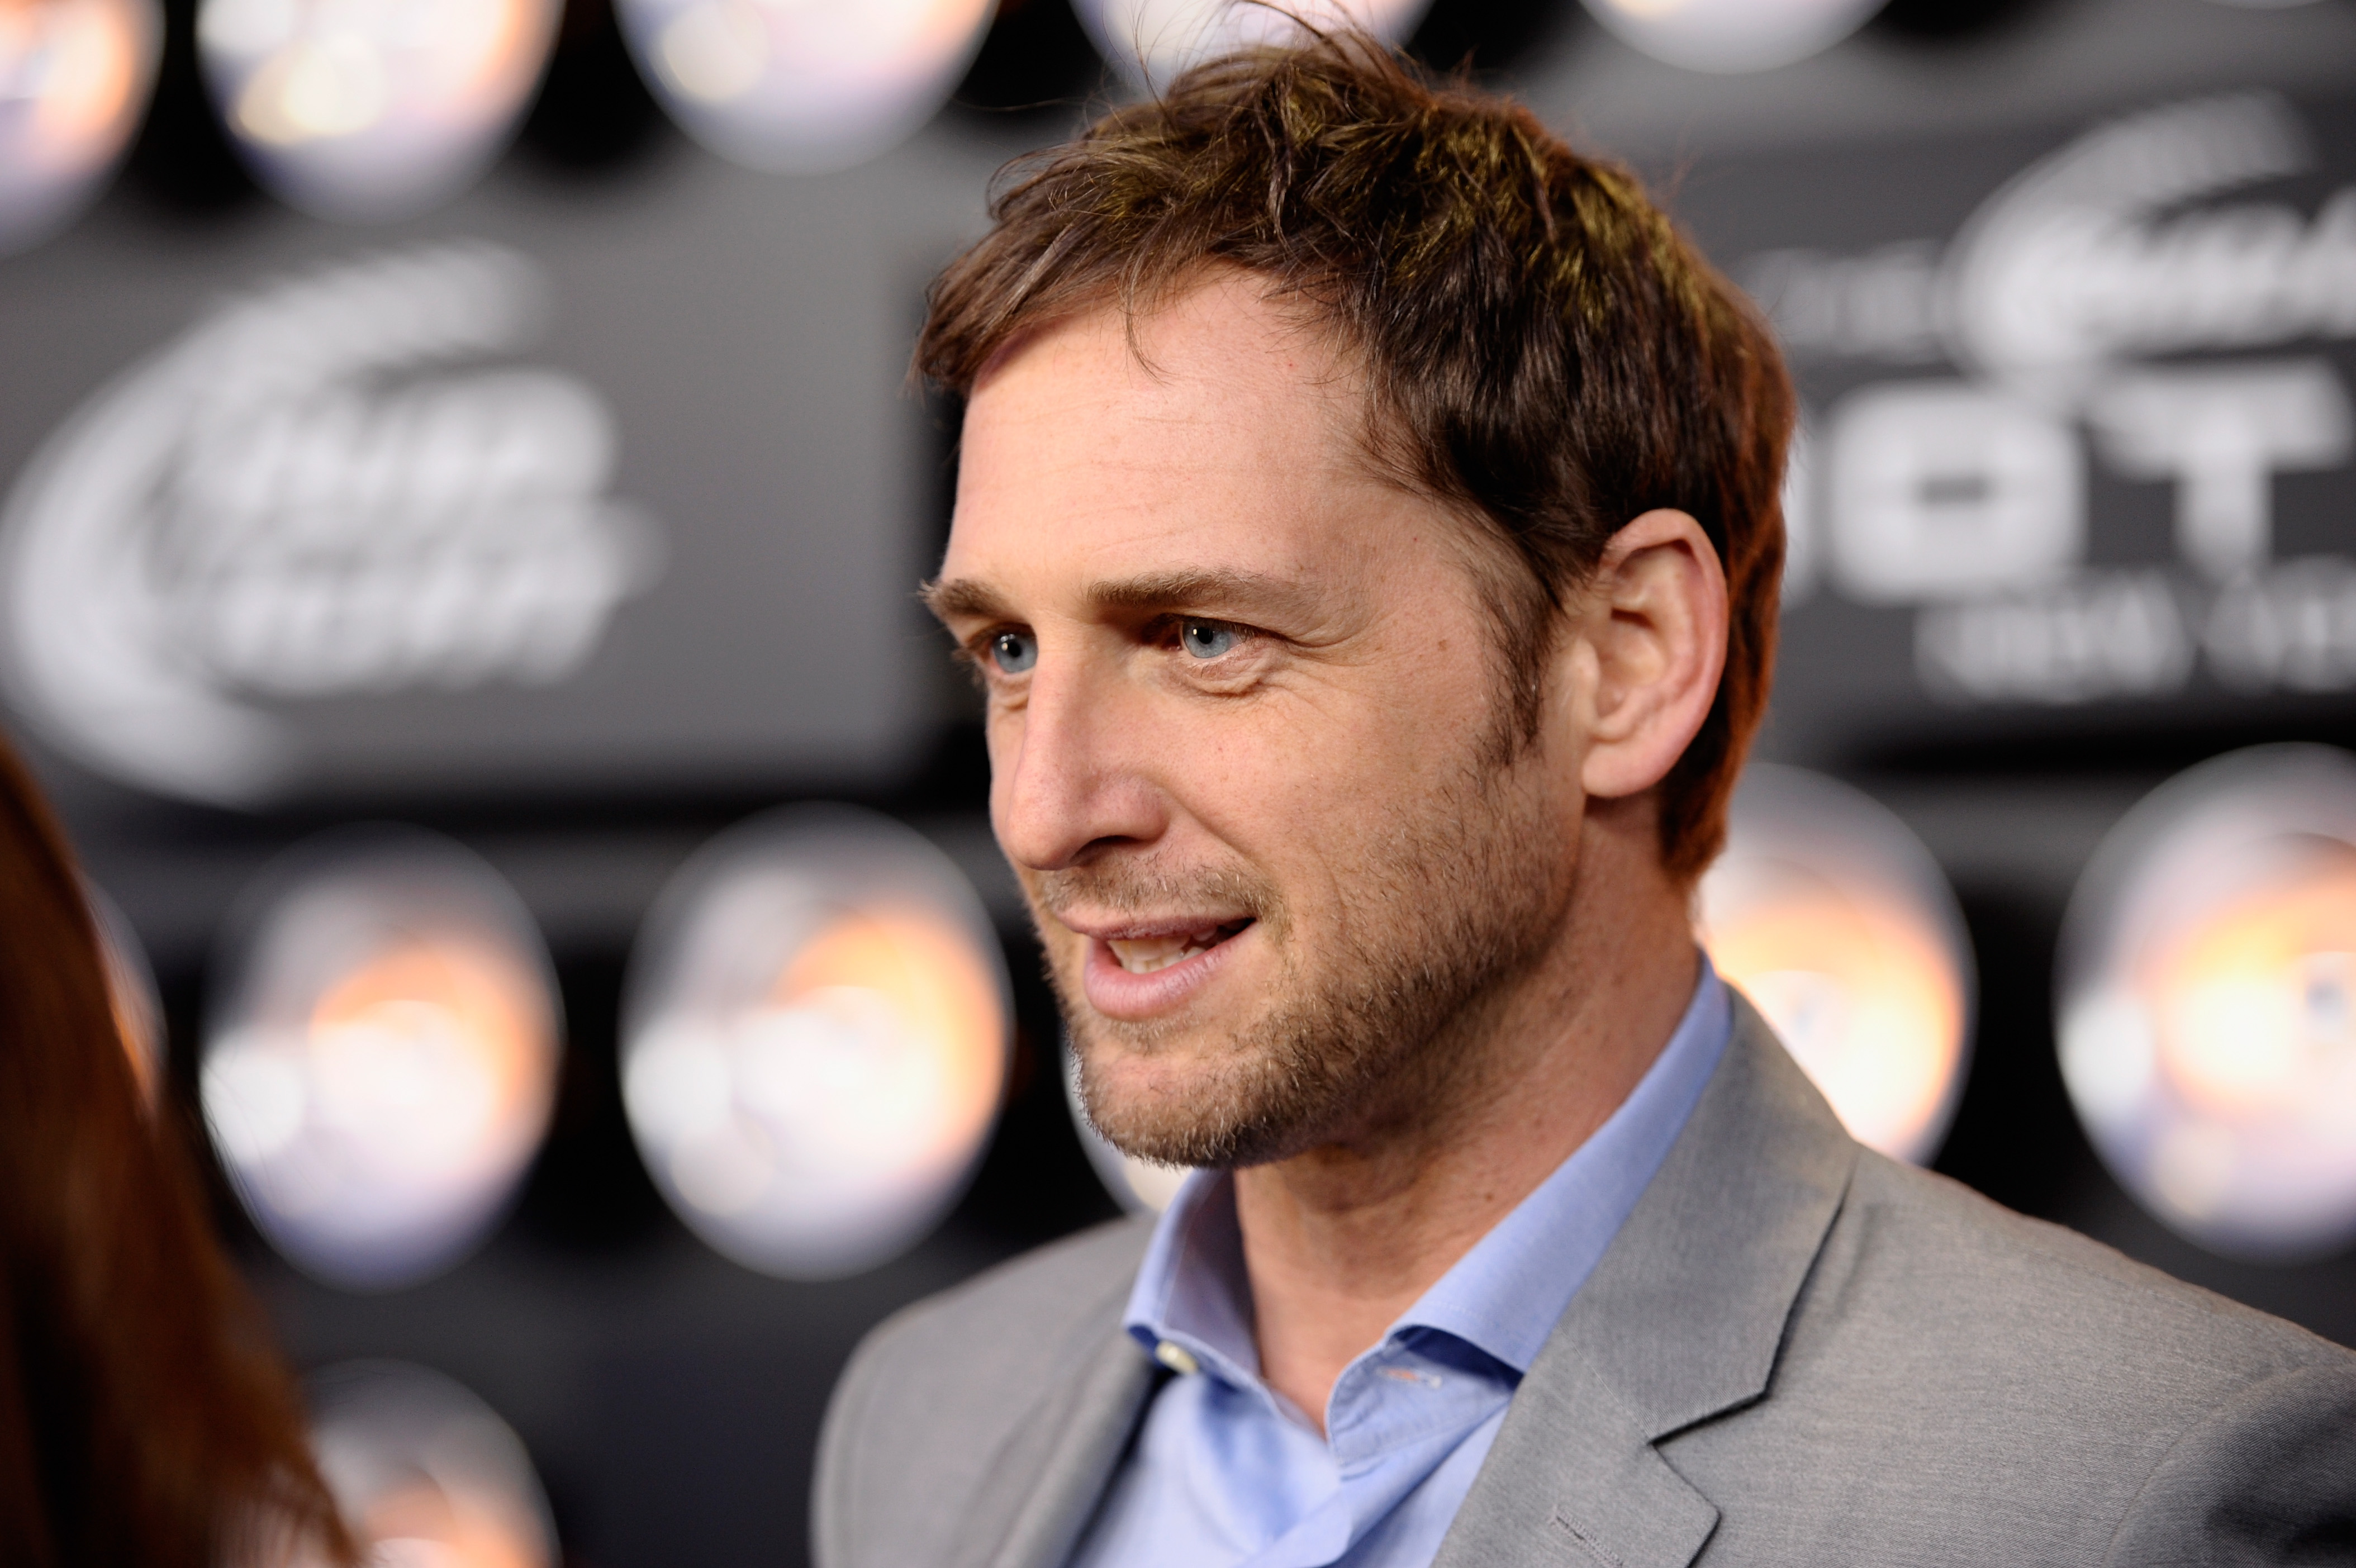 Times Josh Lucas Was Too Attractive To Handle from The